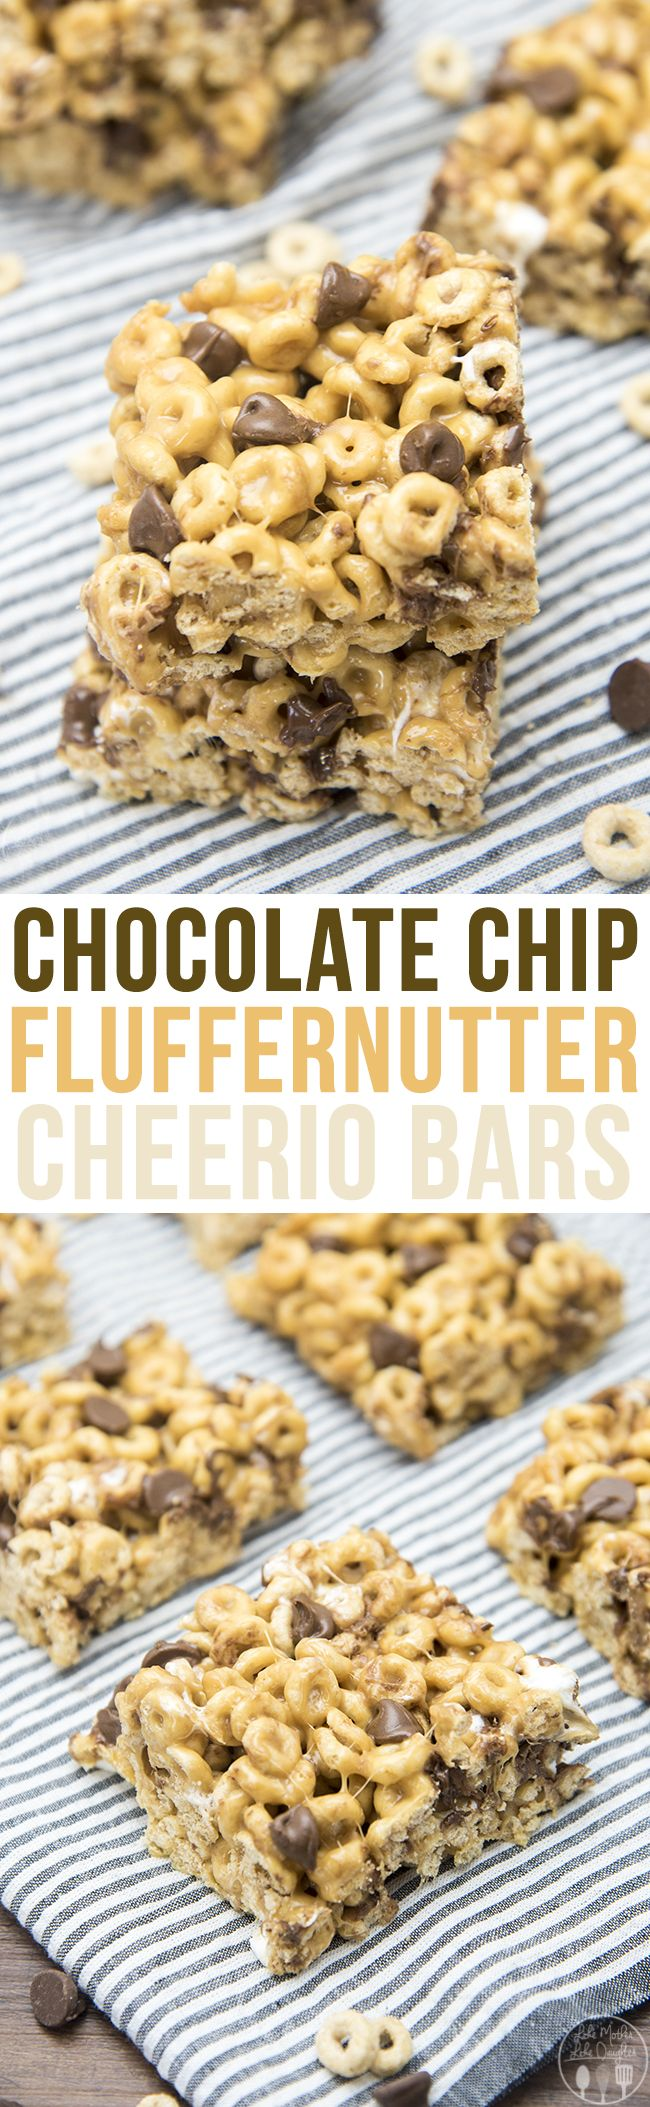 Things that look good to eat: Chocolate Chip Fluffernutter Cheerio Bars - LMLDFo...